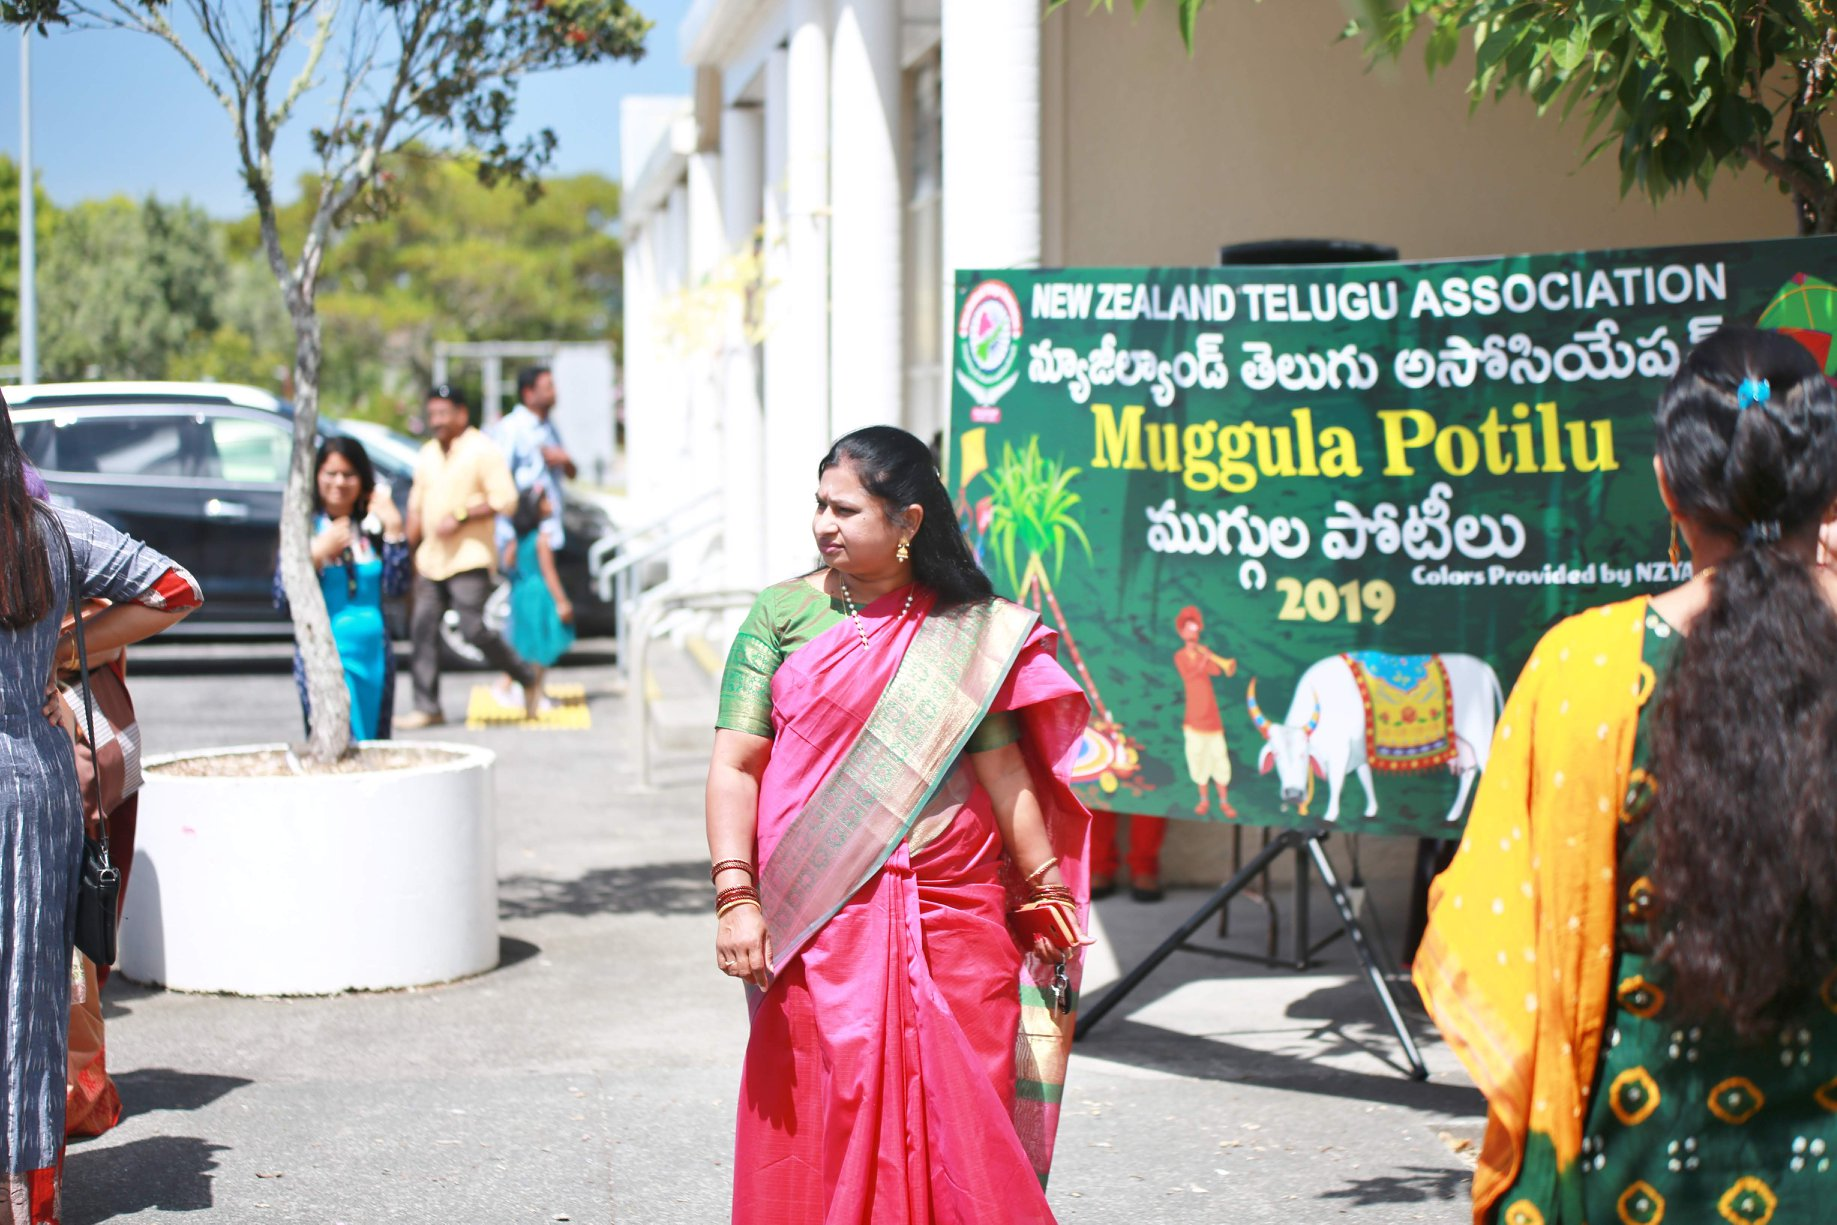 New Zealand Telugu Association